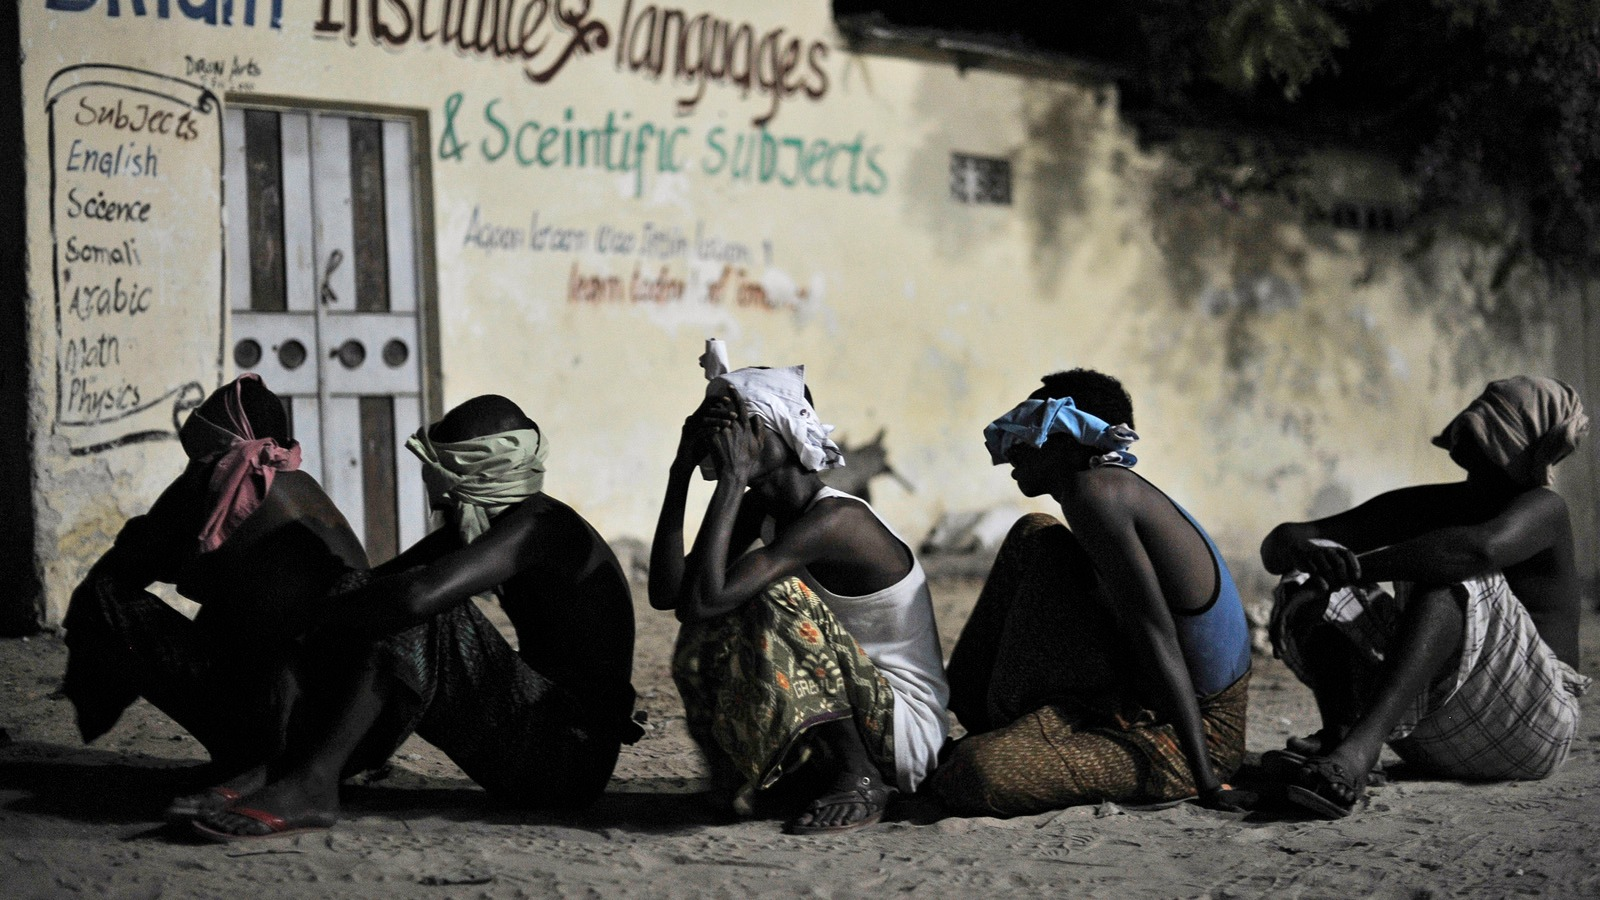 Suspected al-Shabaab militants wait to be taken for interogation during a joint night operation by the Somali security services and the African Union Mission in Somalia (AMISOM), in Mogadishu.